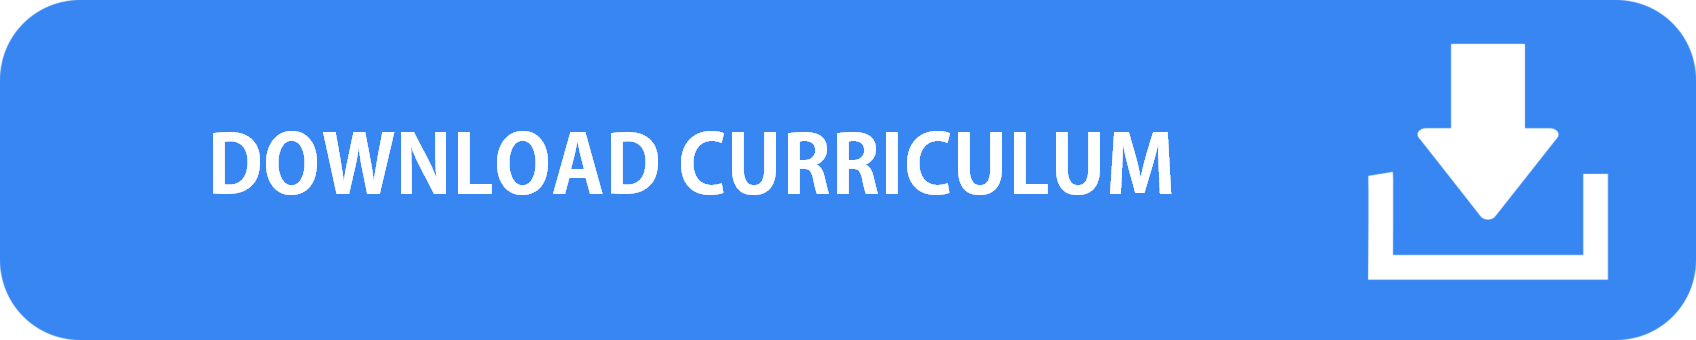 Download Our Curriculum